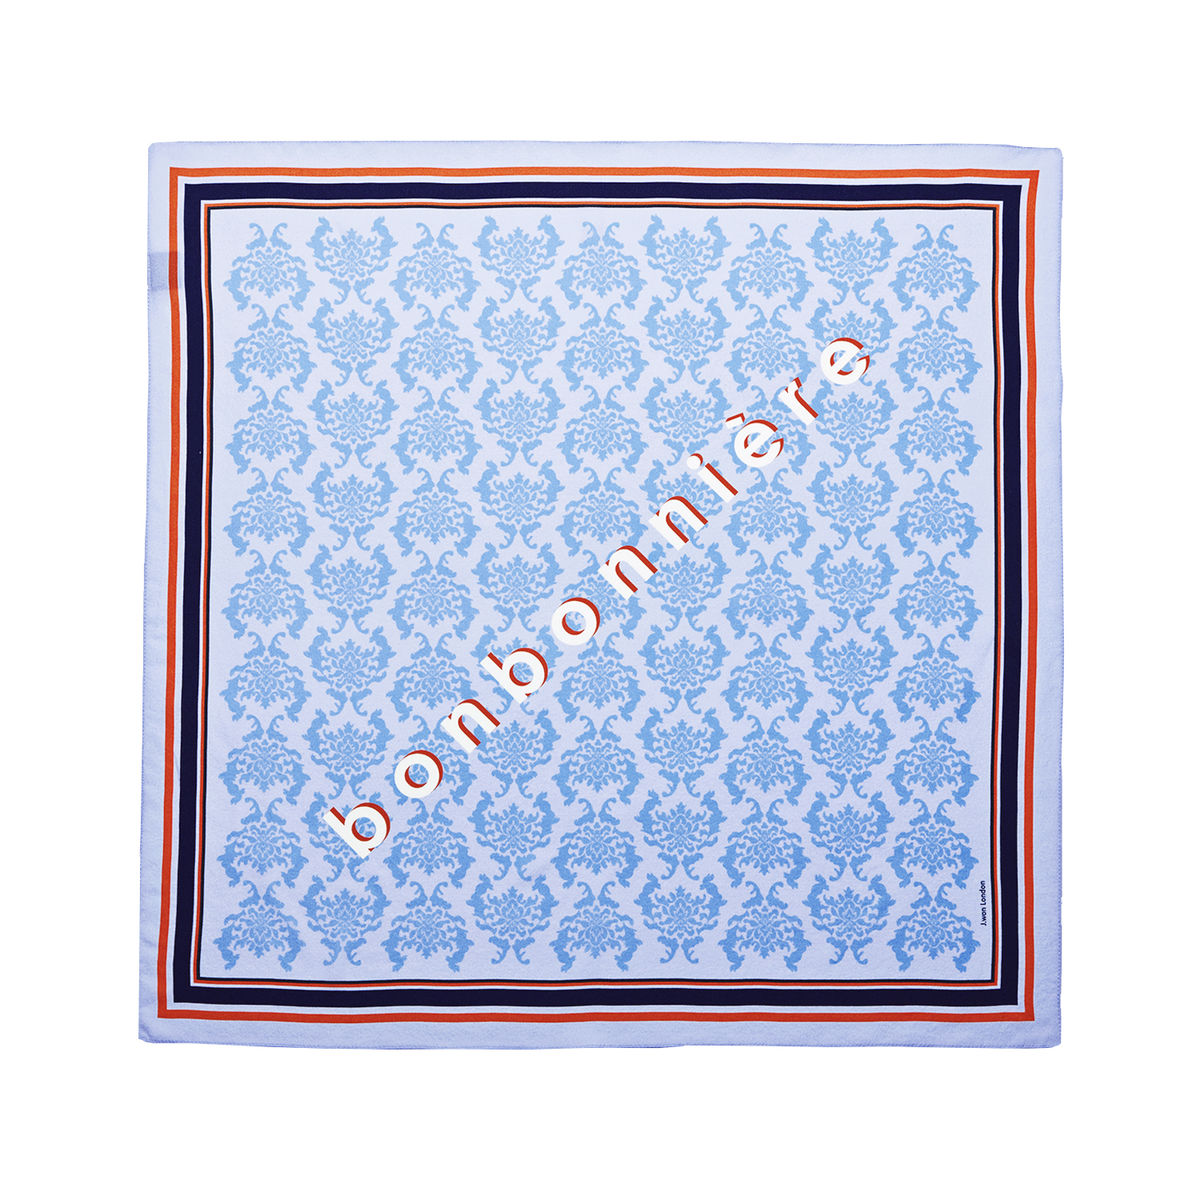 'Bonbonniere' Scarf - product images  of